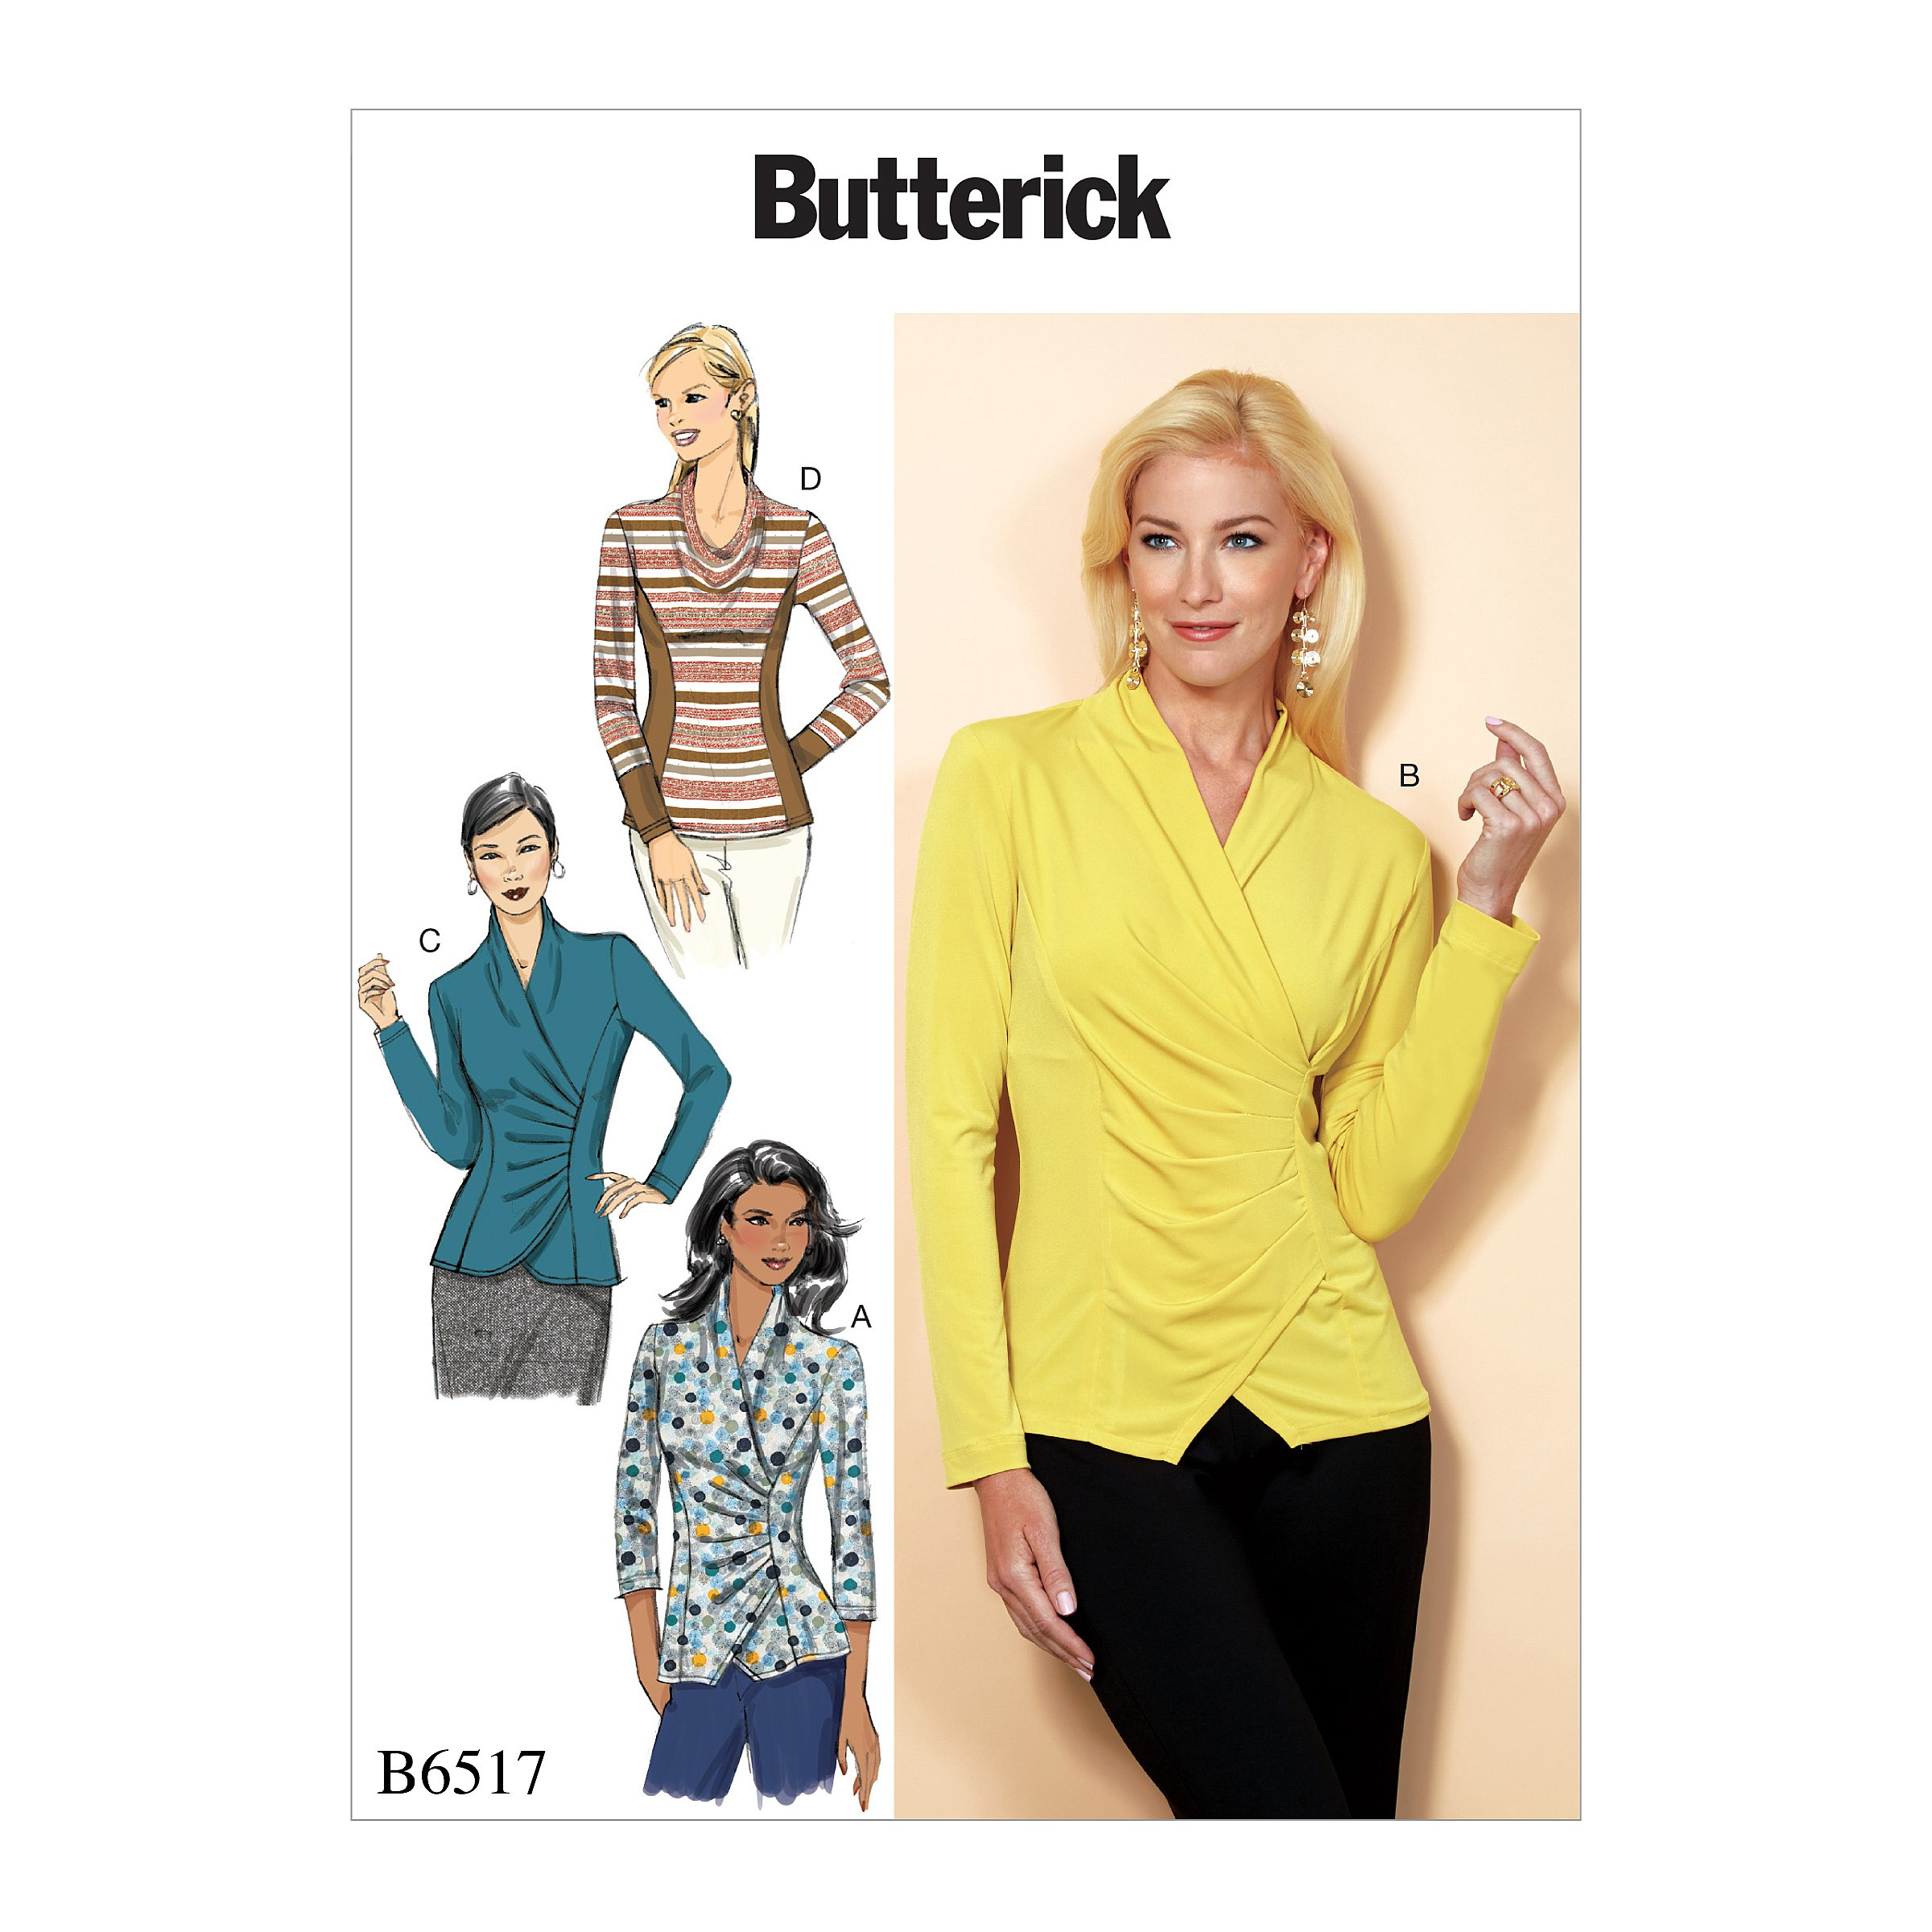 Butterick Sewing Pattern 6517 Misses'Top With Pleat And Options